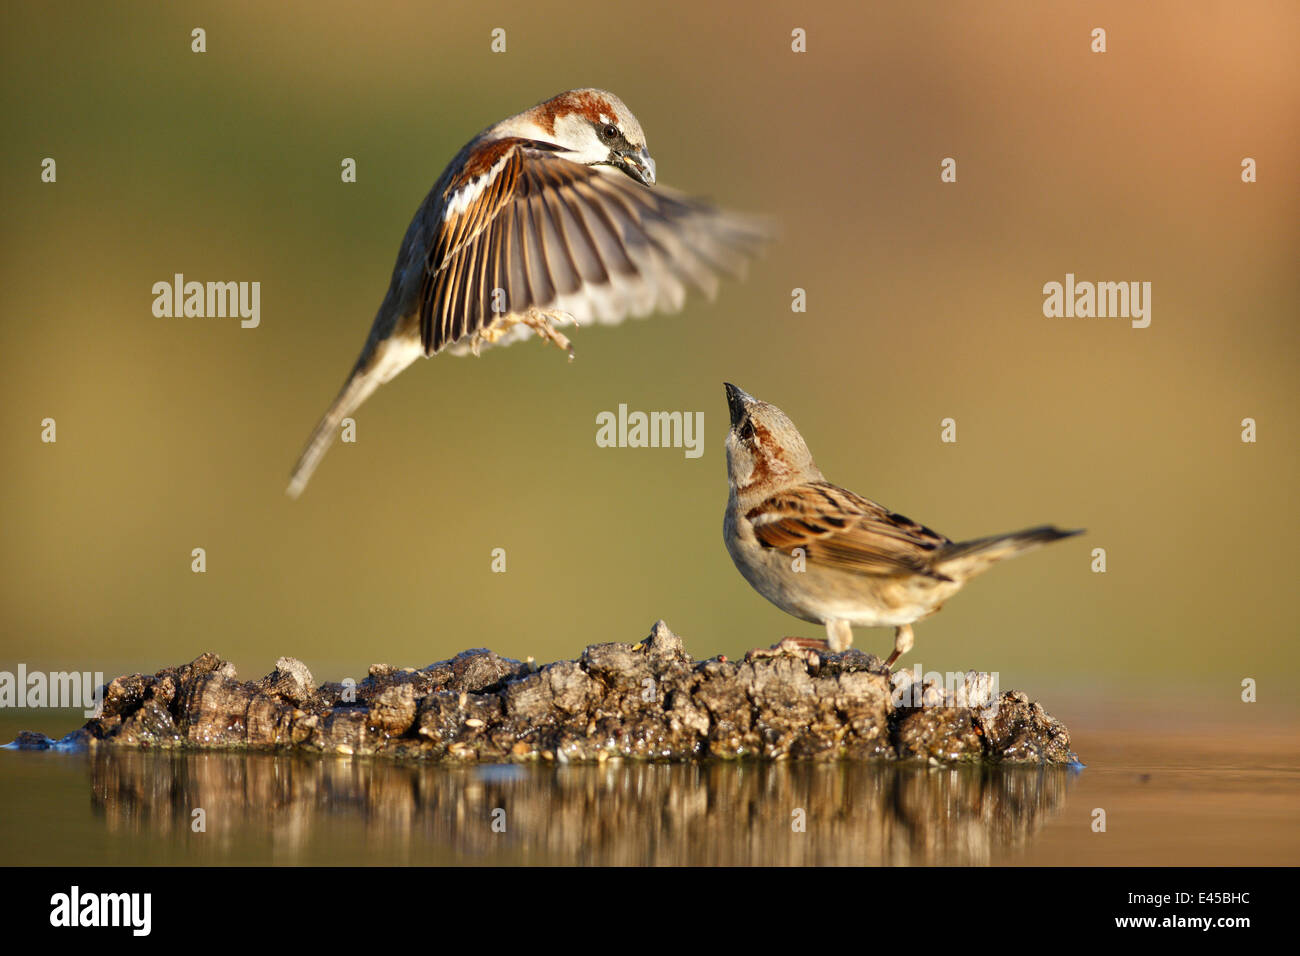 Common sparrow (Passer domesticus) landing next to another sparrow near water, Alicante, Spain - Stock Image